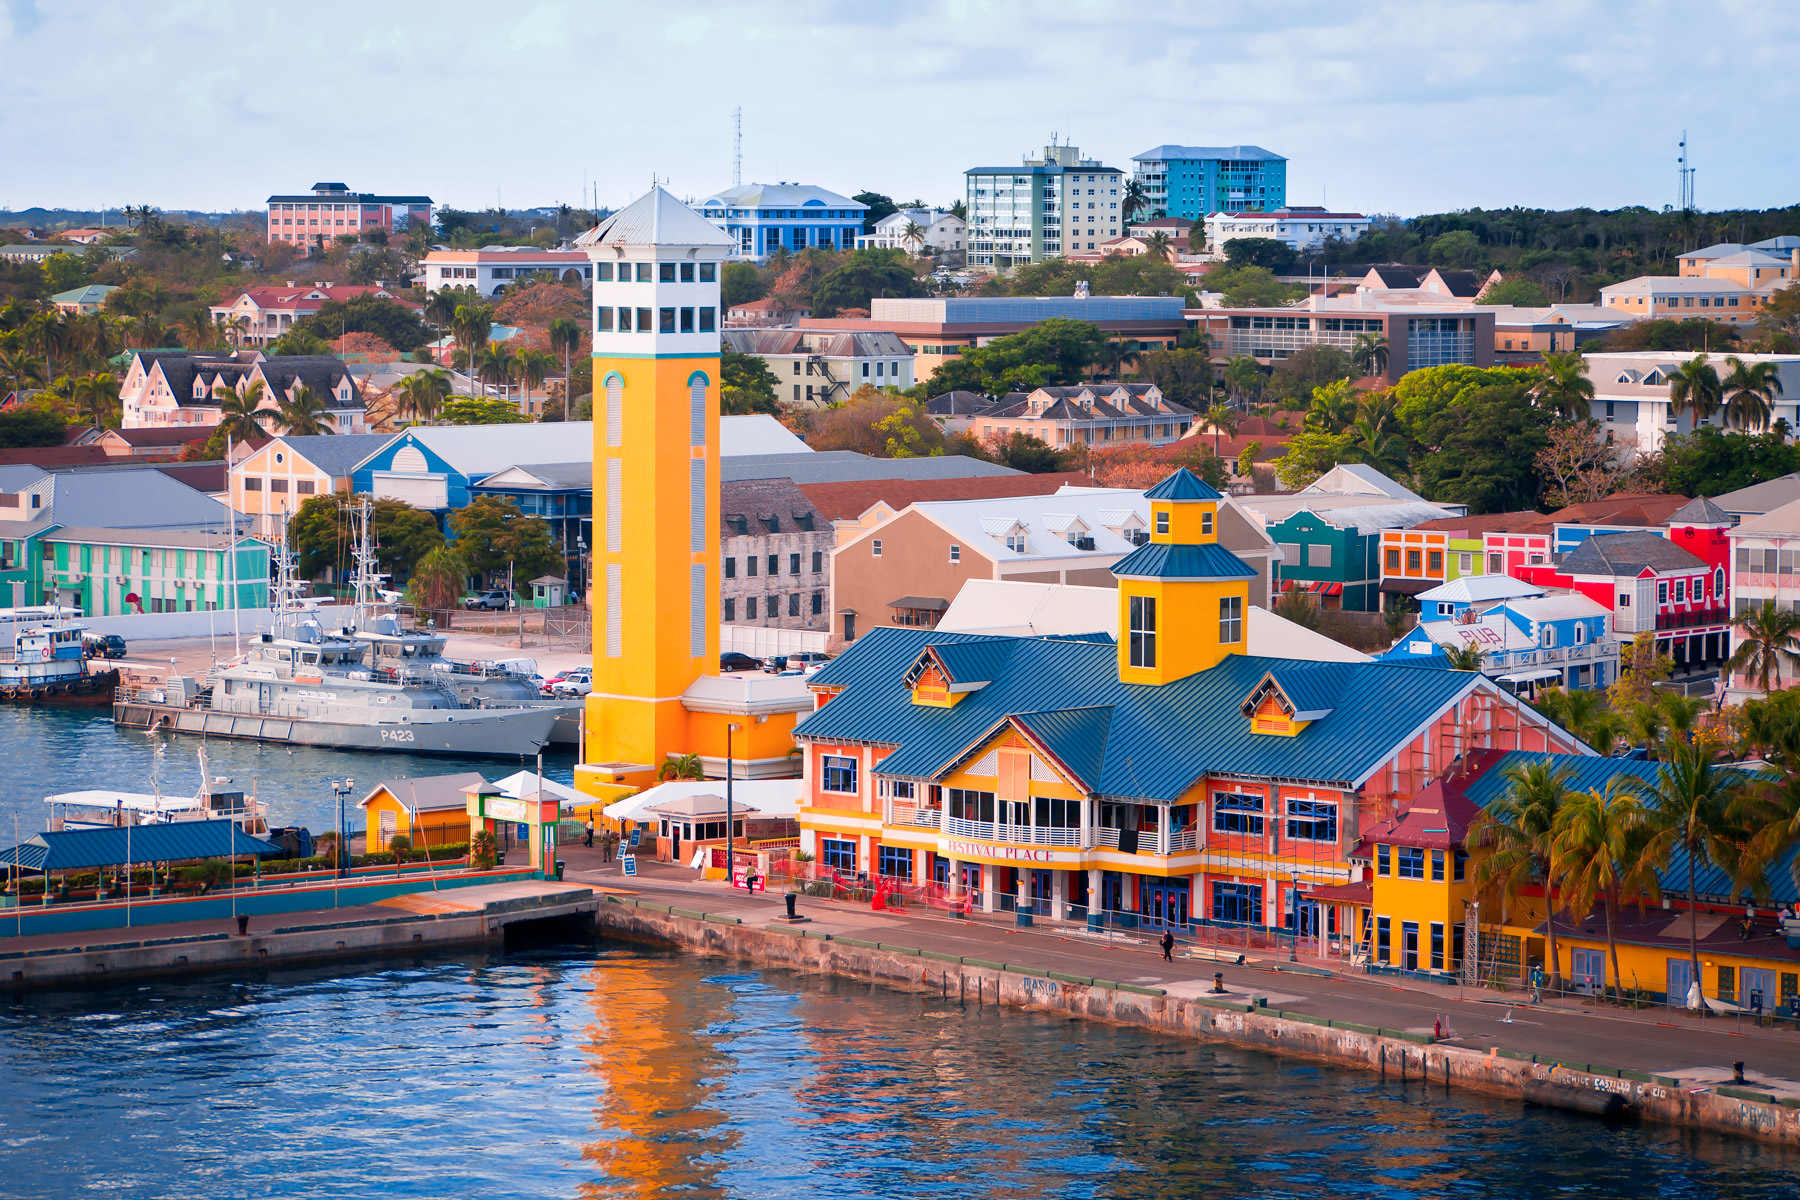 The colorful, vivid environs of Nassau, Bahamas.